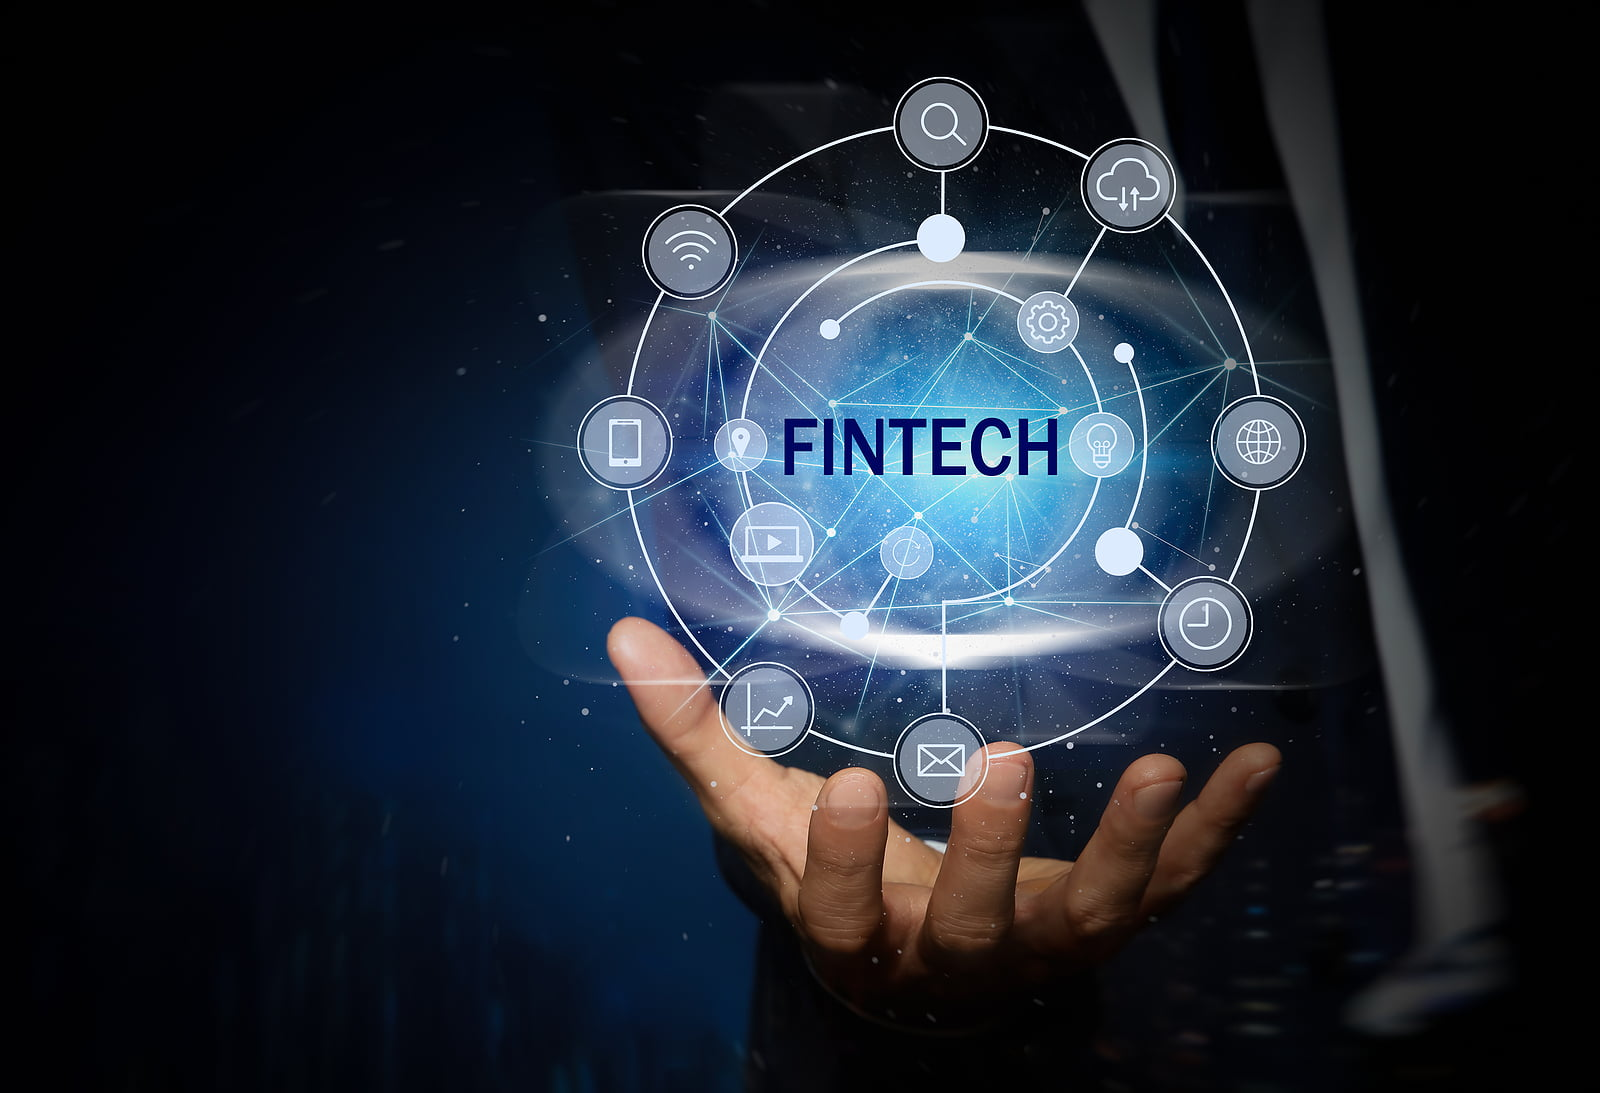 Top Fintech Companies in 2021 and Start ups - IT Chronicles